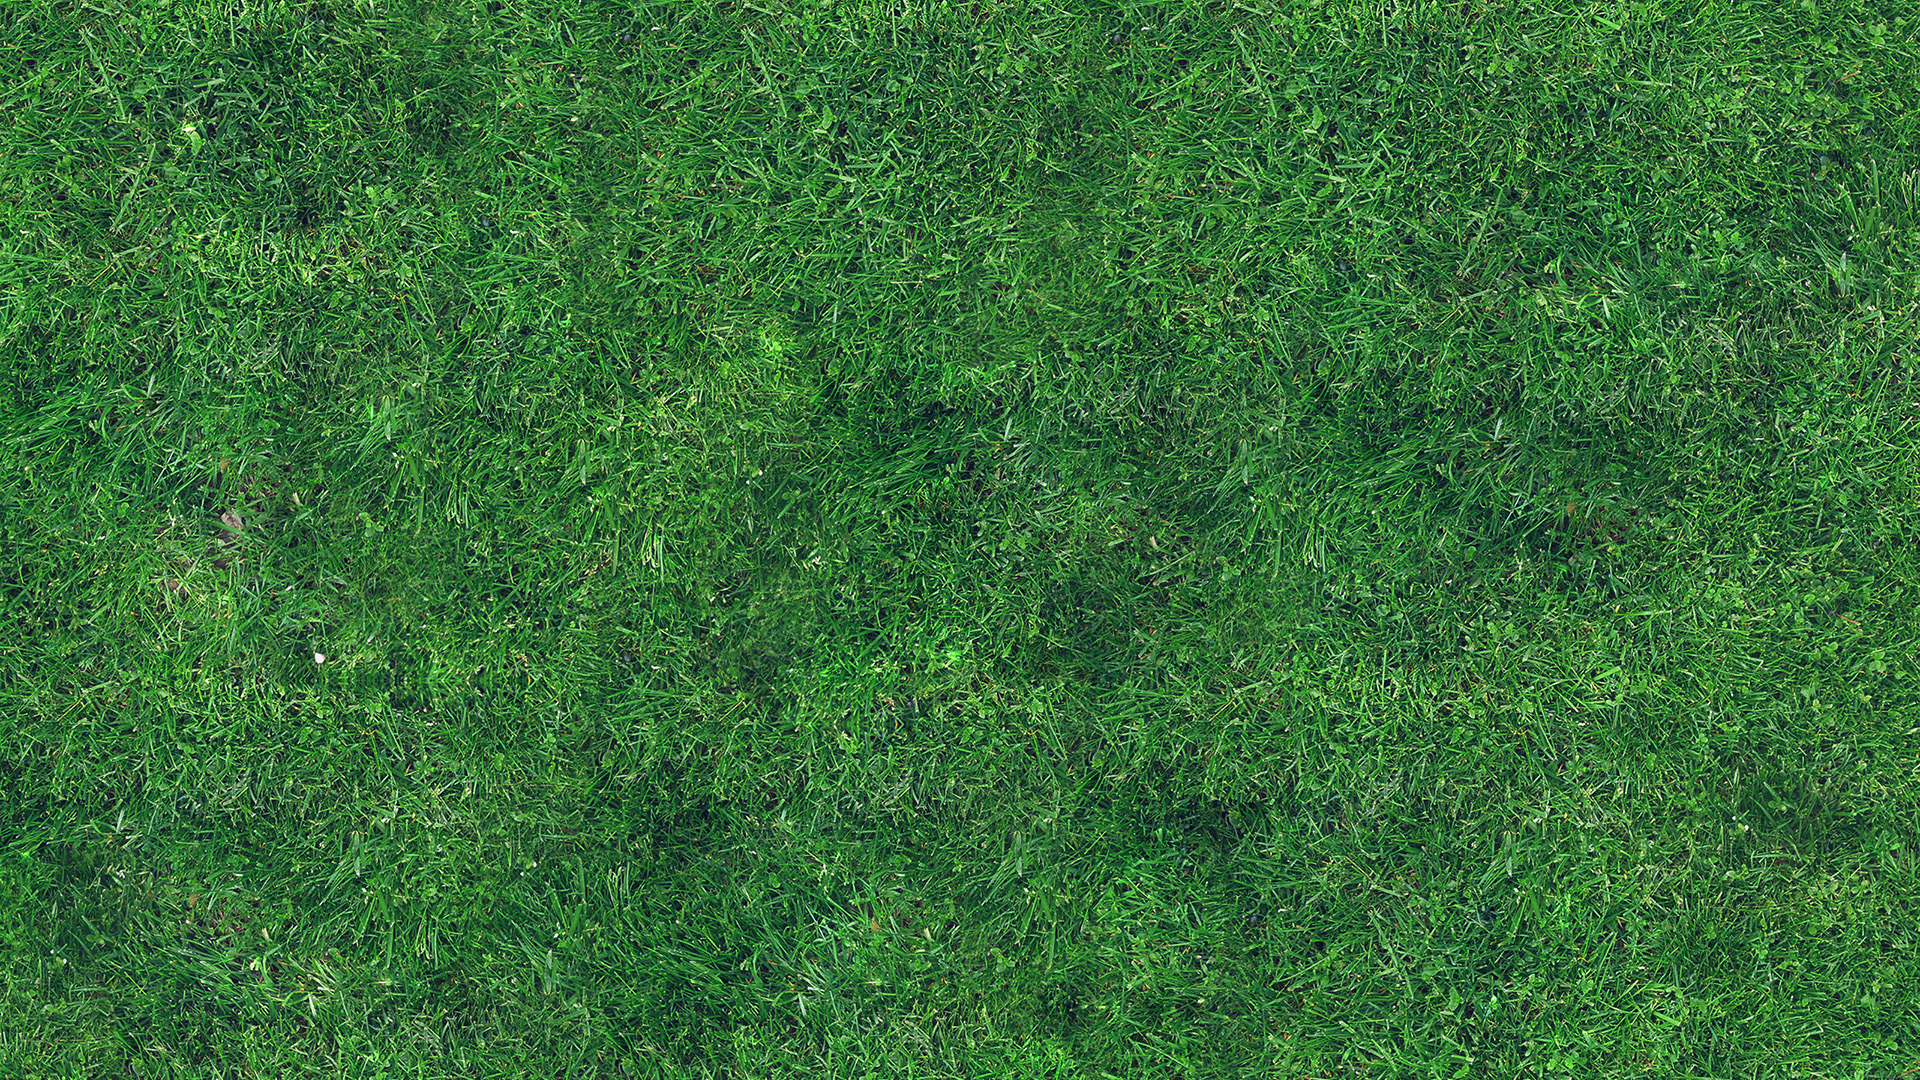 Vg56 Grass Texture Nature Pattern Papers Co